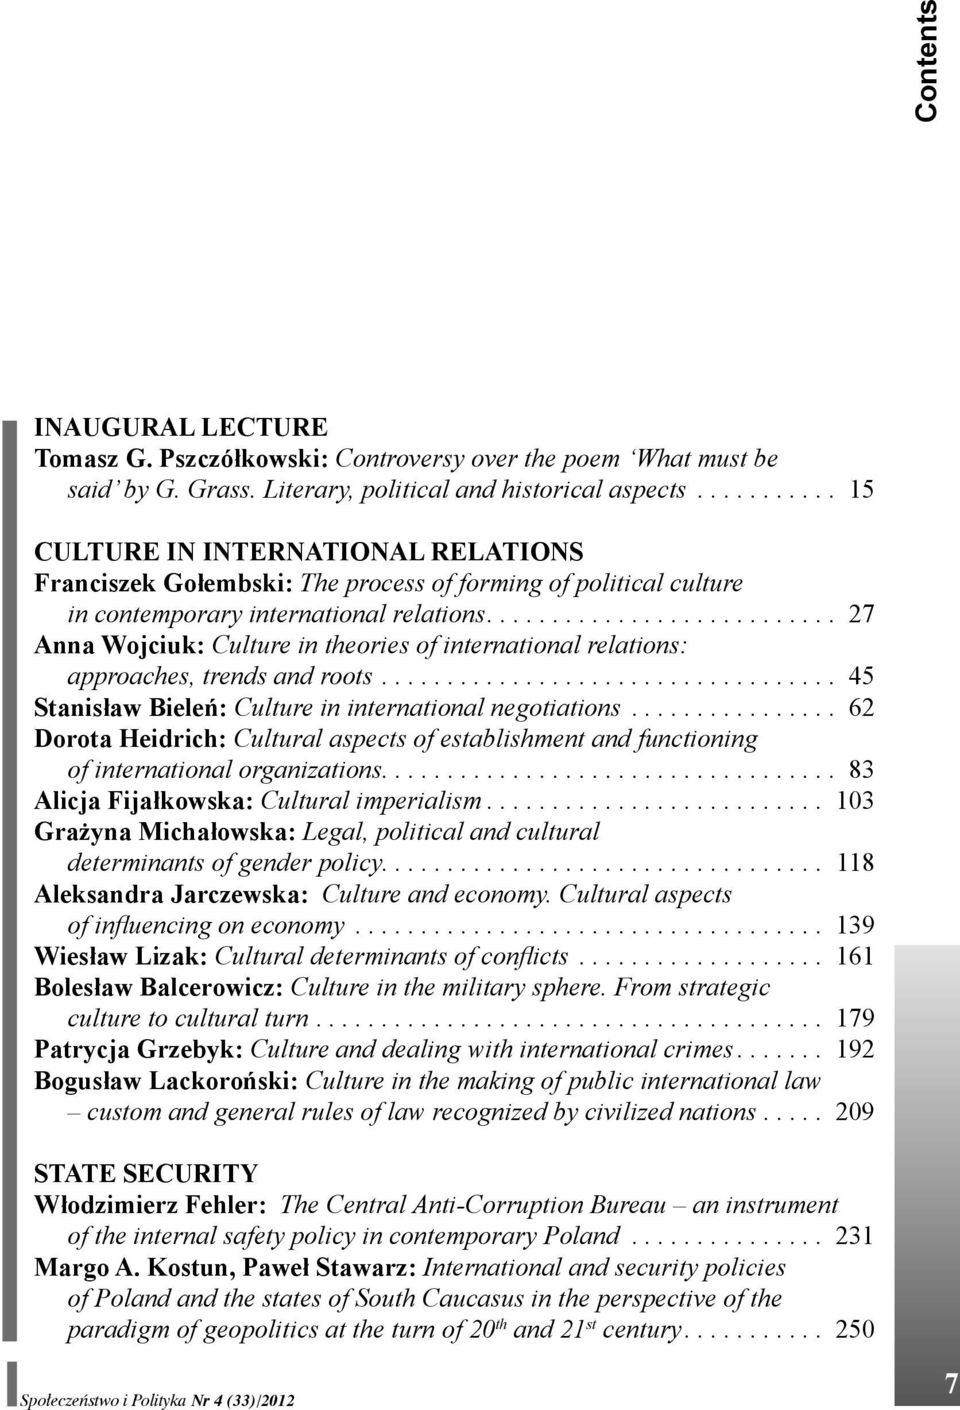 .......................... 27 Anna Wojciuk: Culture in theories of international relations: approaches, trends and roots................................... 45 Stanisław Bieleń: Culture in international negotiations.